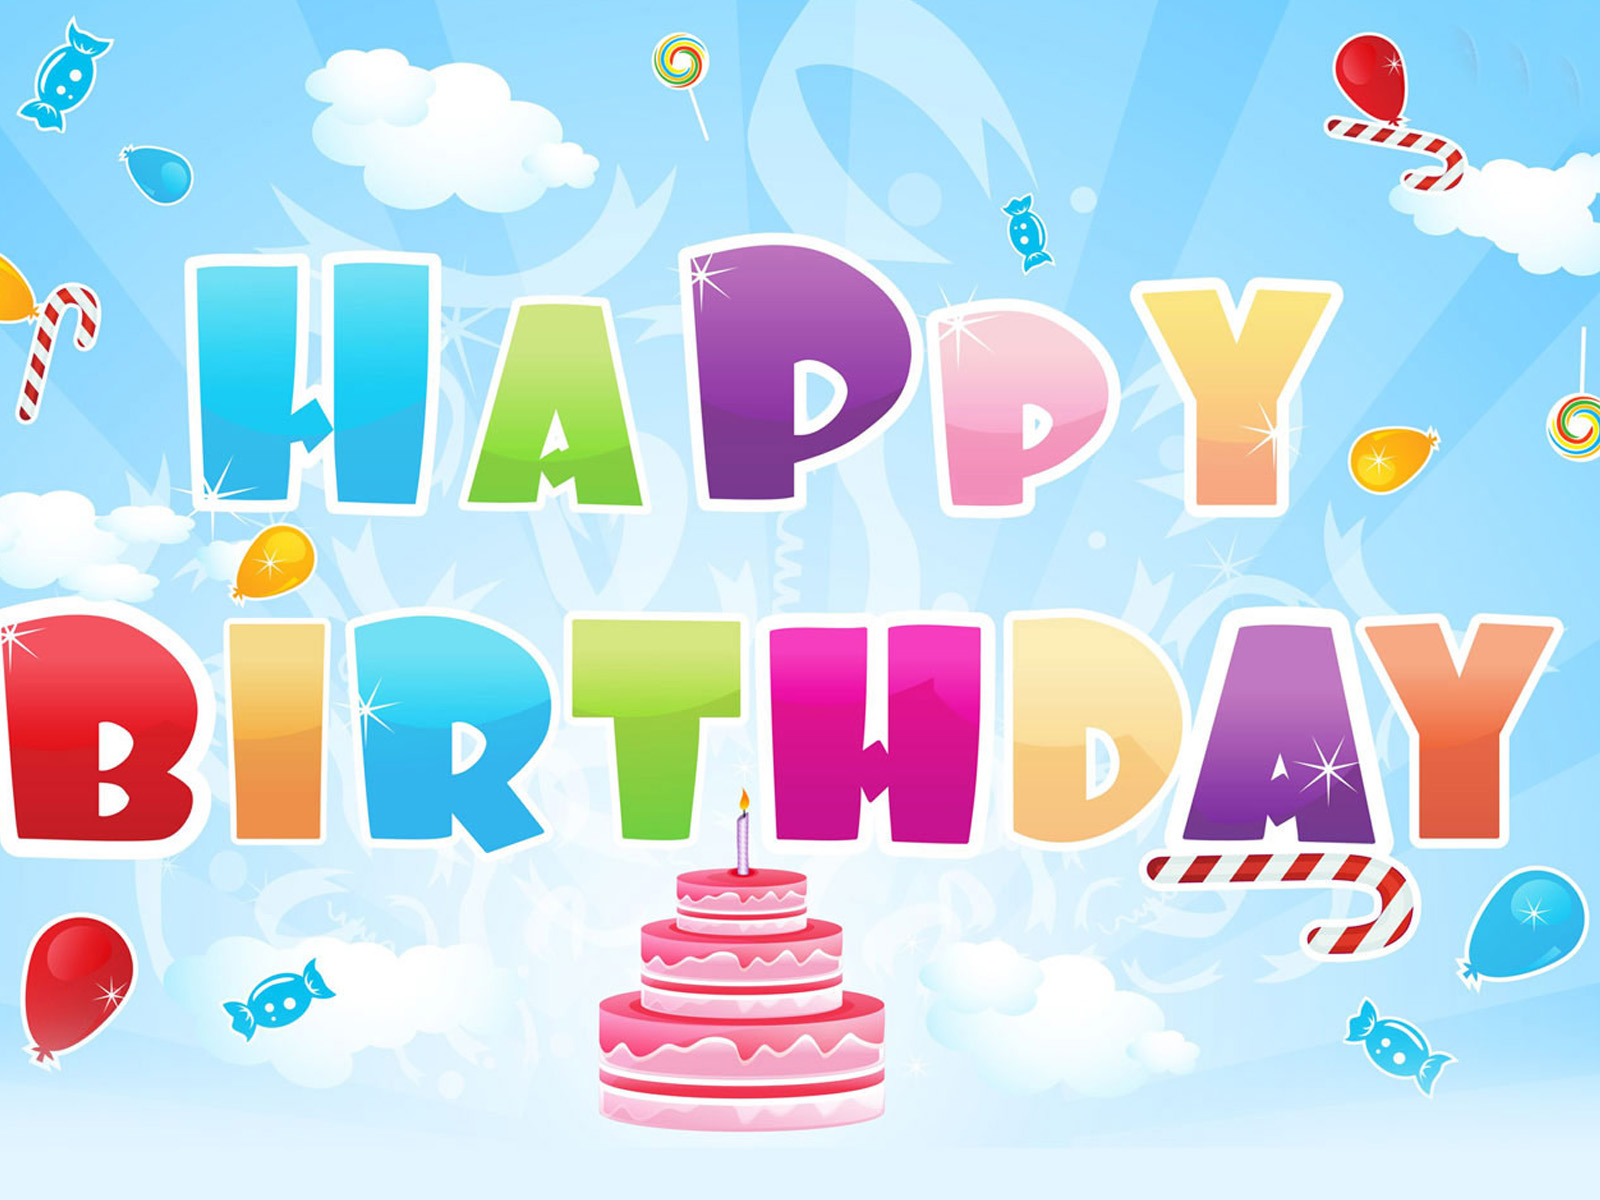 birthday background powerpoint ; happy-birthday-greeting-ppt-backgrounds-powerpoint